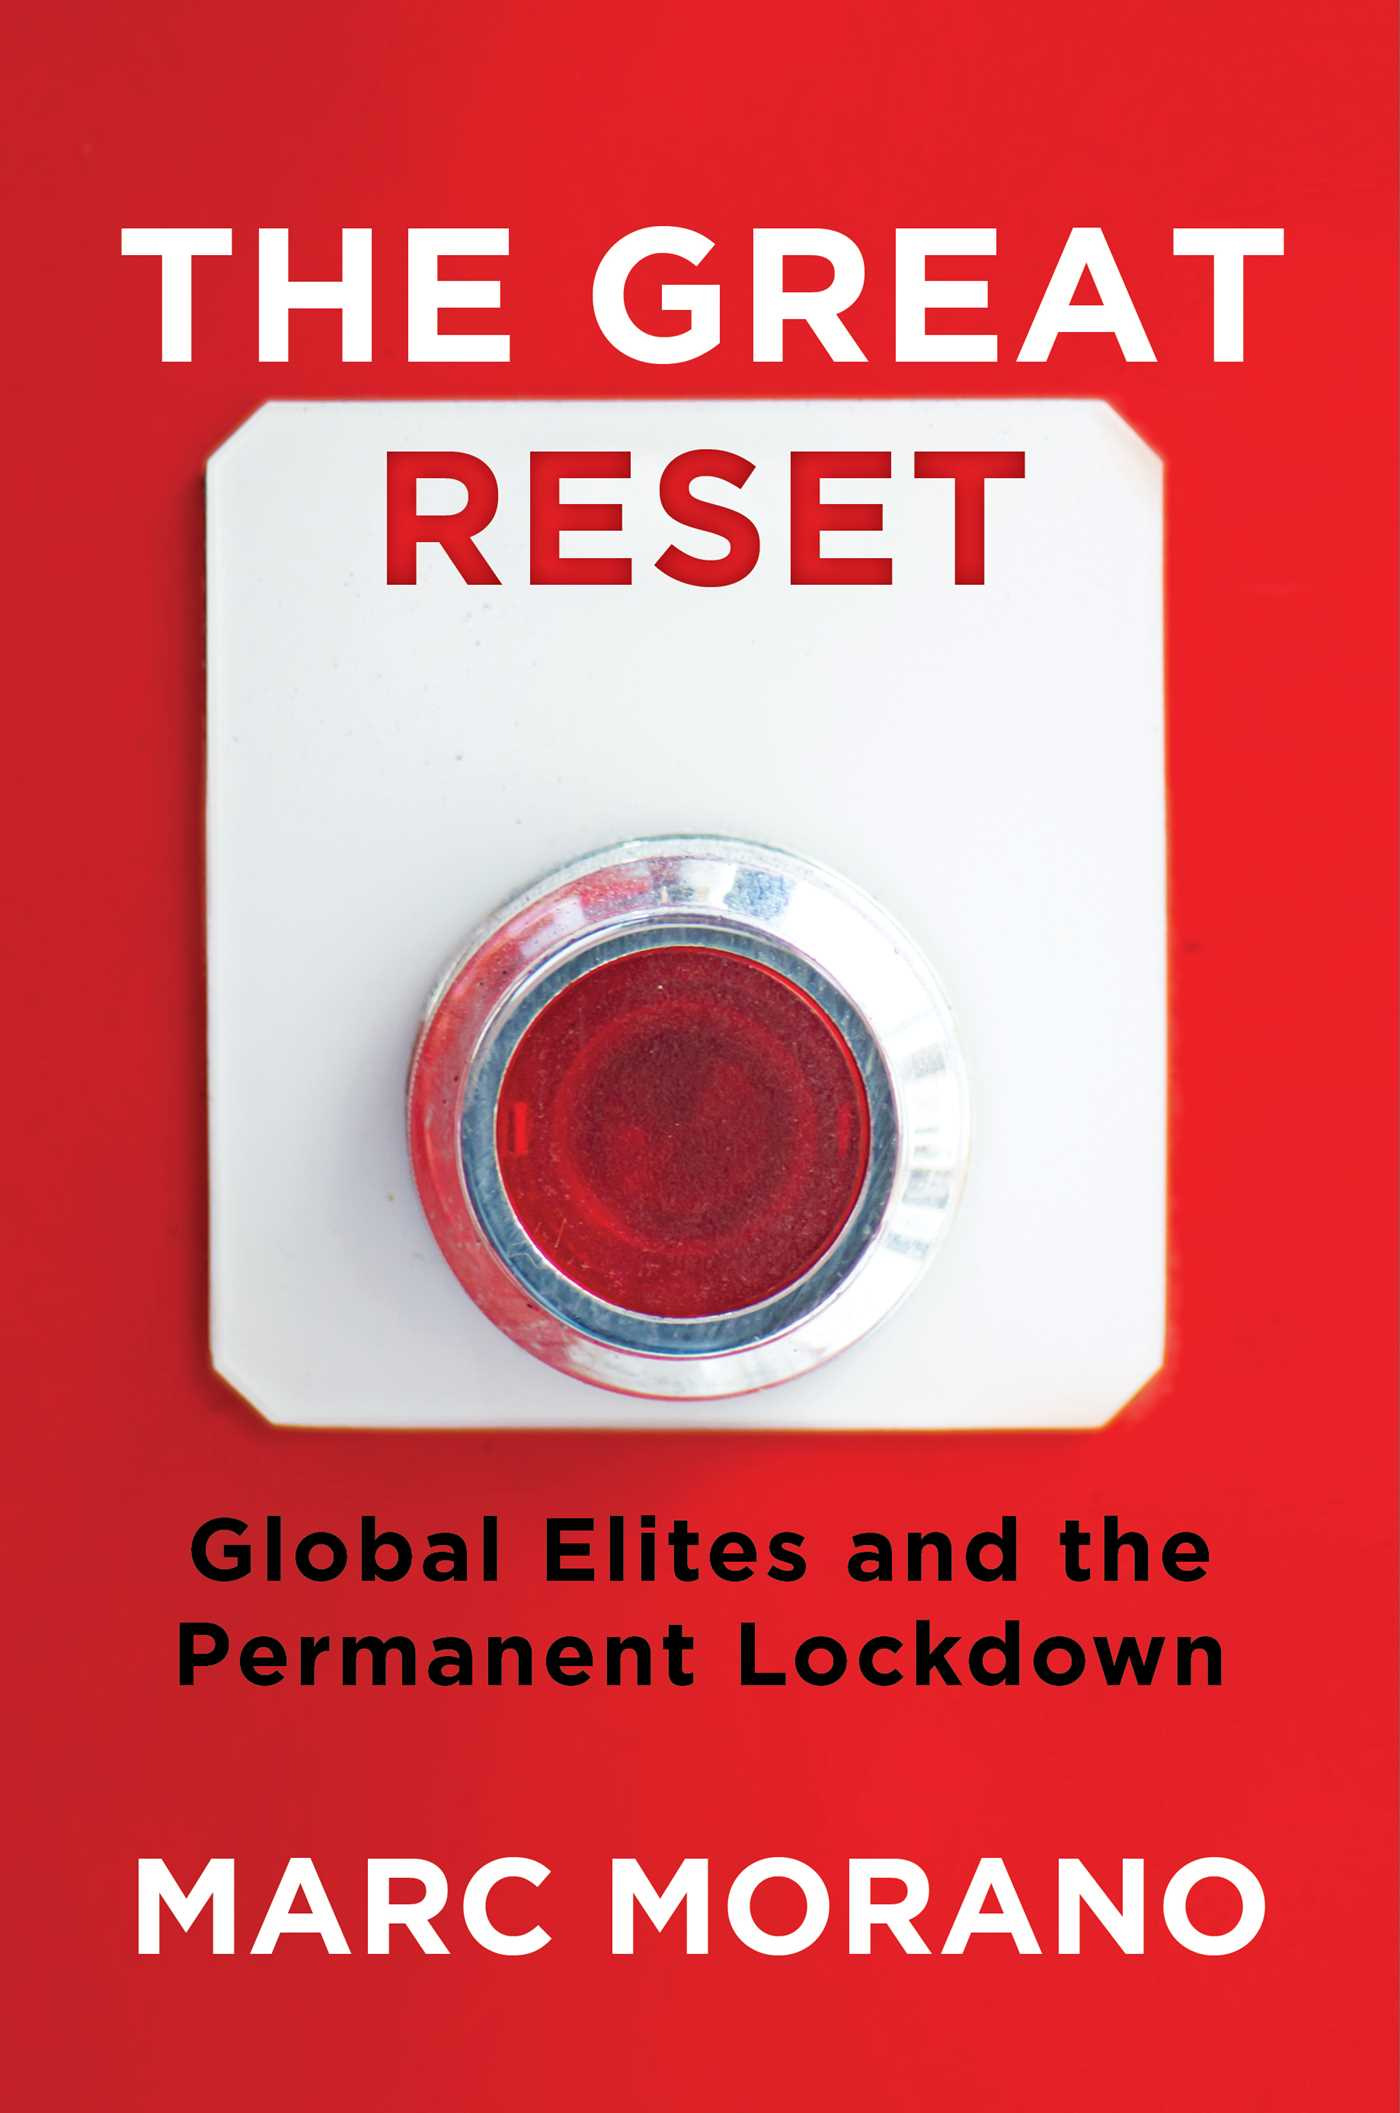 The Great Reset: How the Tyranny of Global Elites Threatens Our Economy and Your Freedom